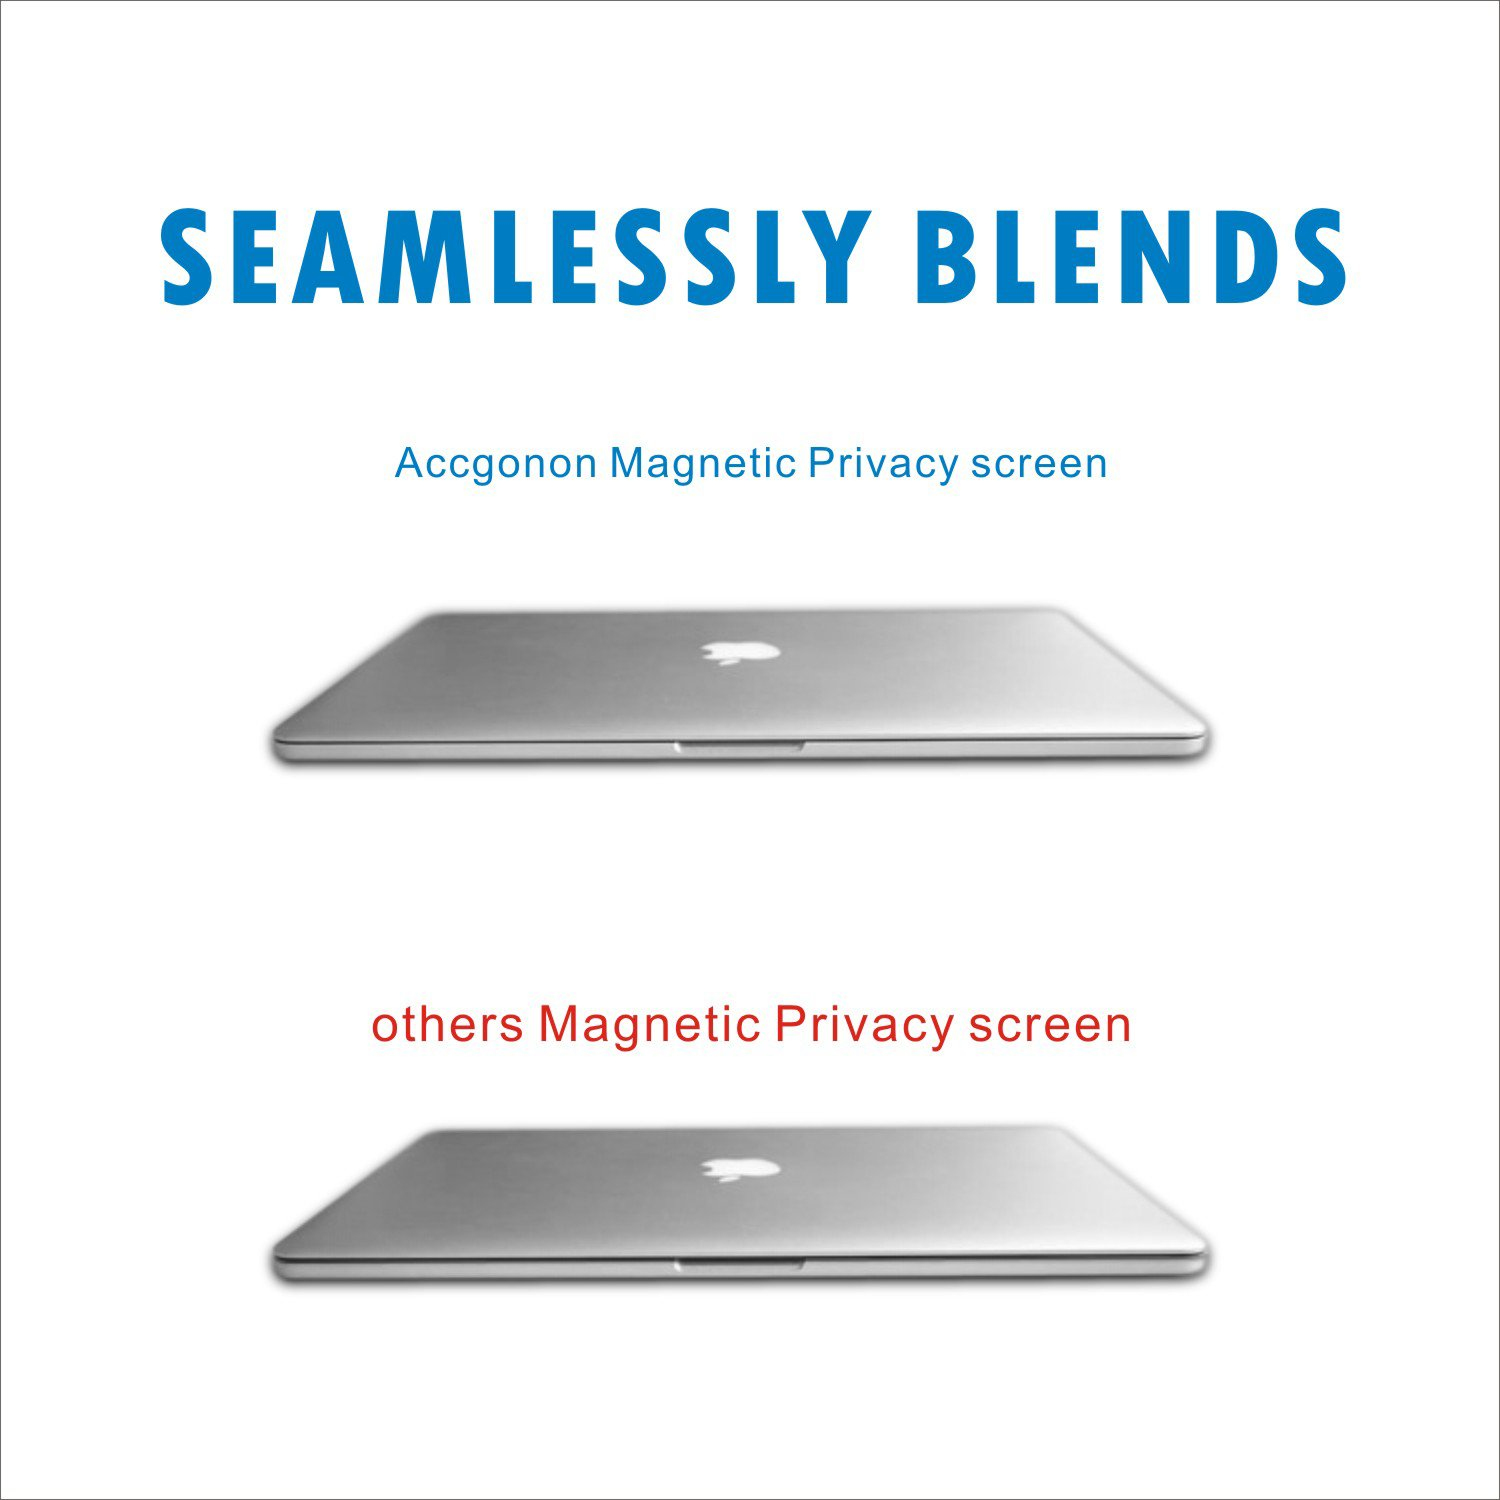 Accgonon Laptop Magnetic Privacy Screen Protectors Filter,Compatible 13-inch MacBook Pro (2016-current Version,Model:A1706A1708A1989),Anti-Glare,Anti-Spy,Scratch and UV Protection,Easy On/Off by ACCGONON (Image #5)